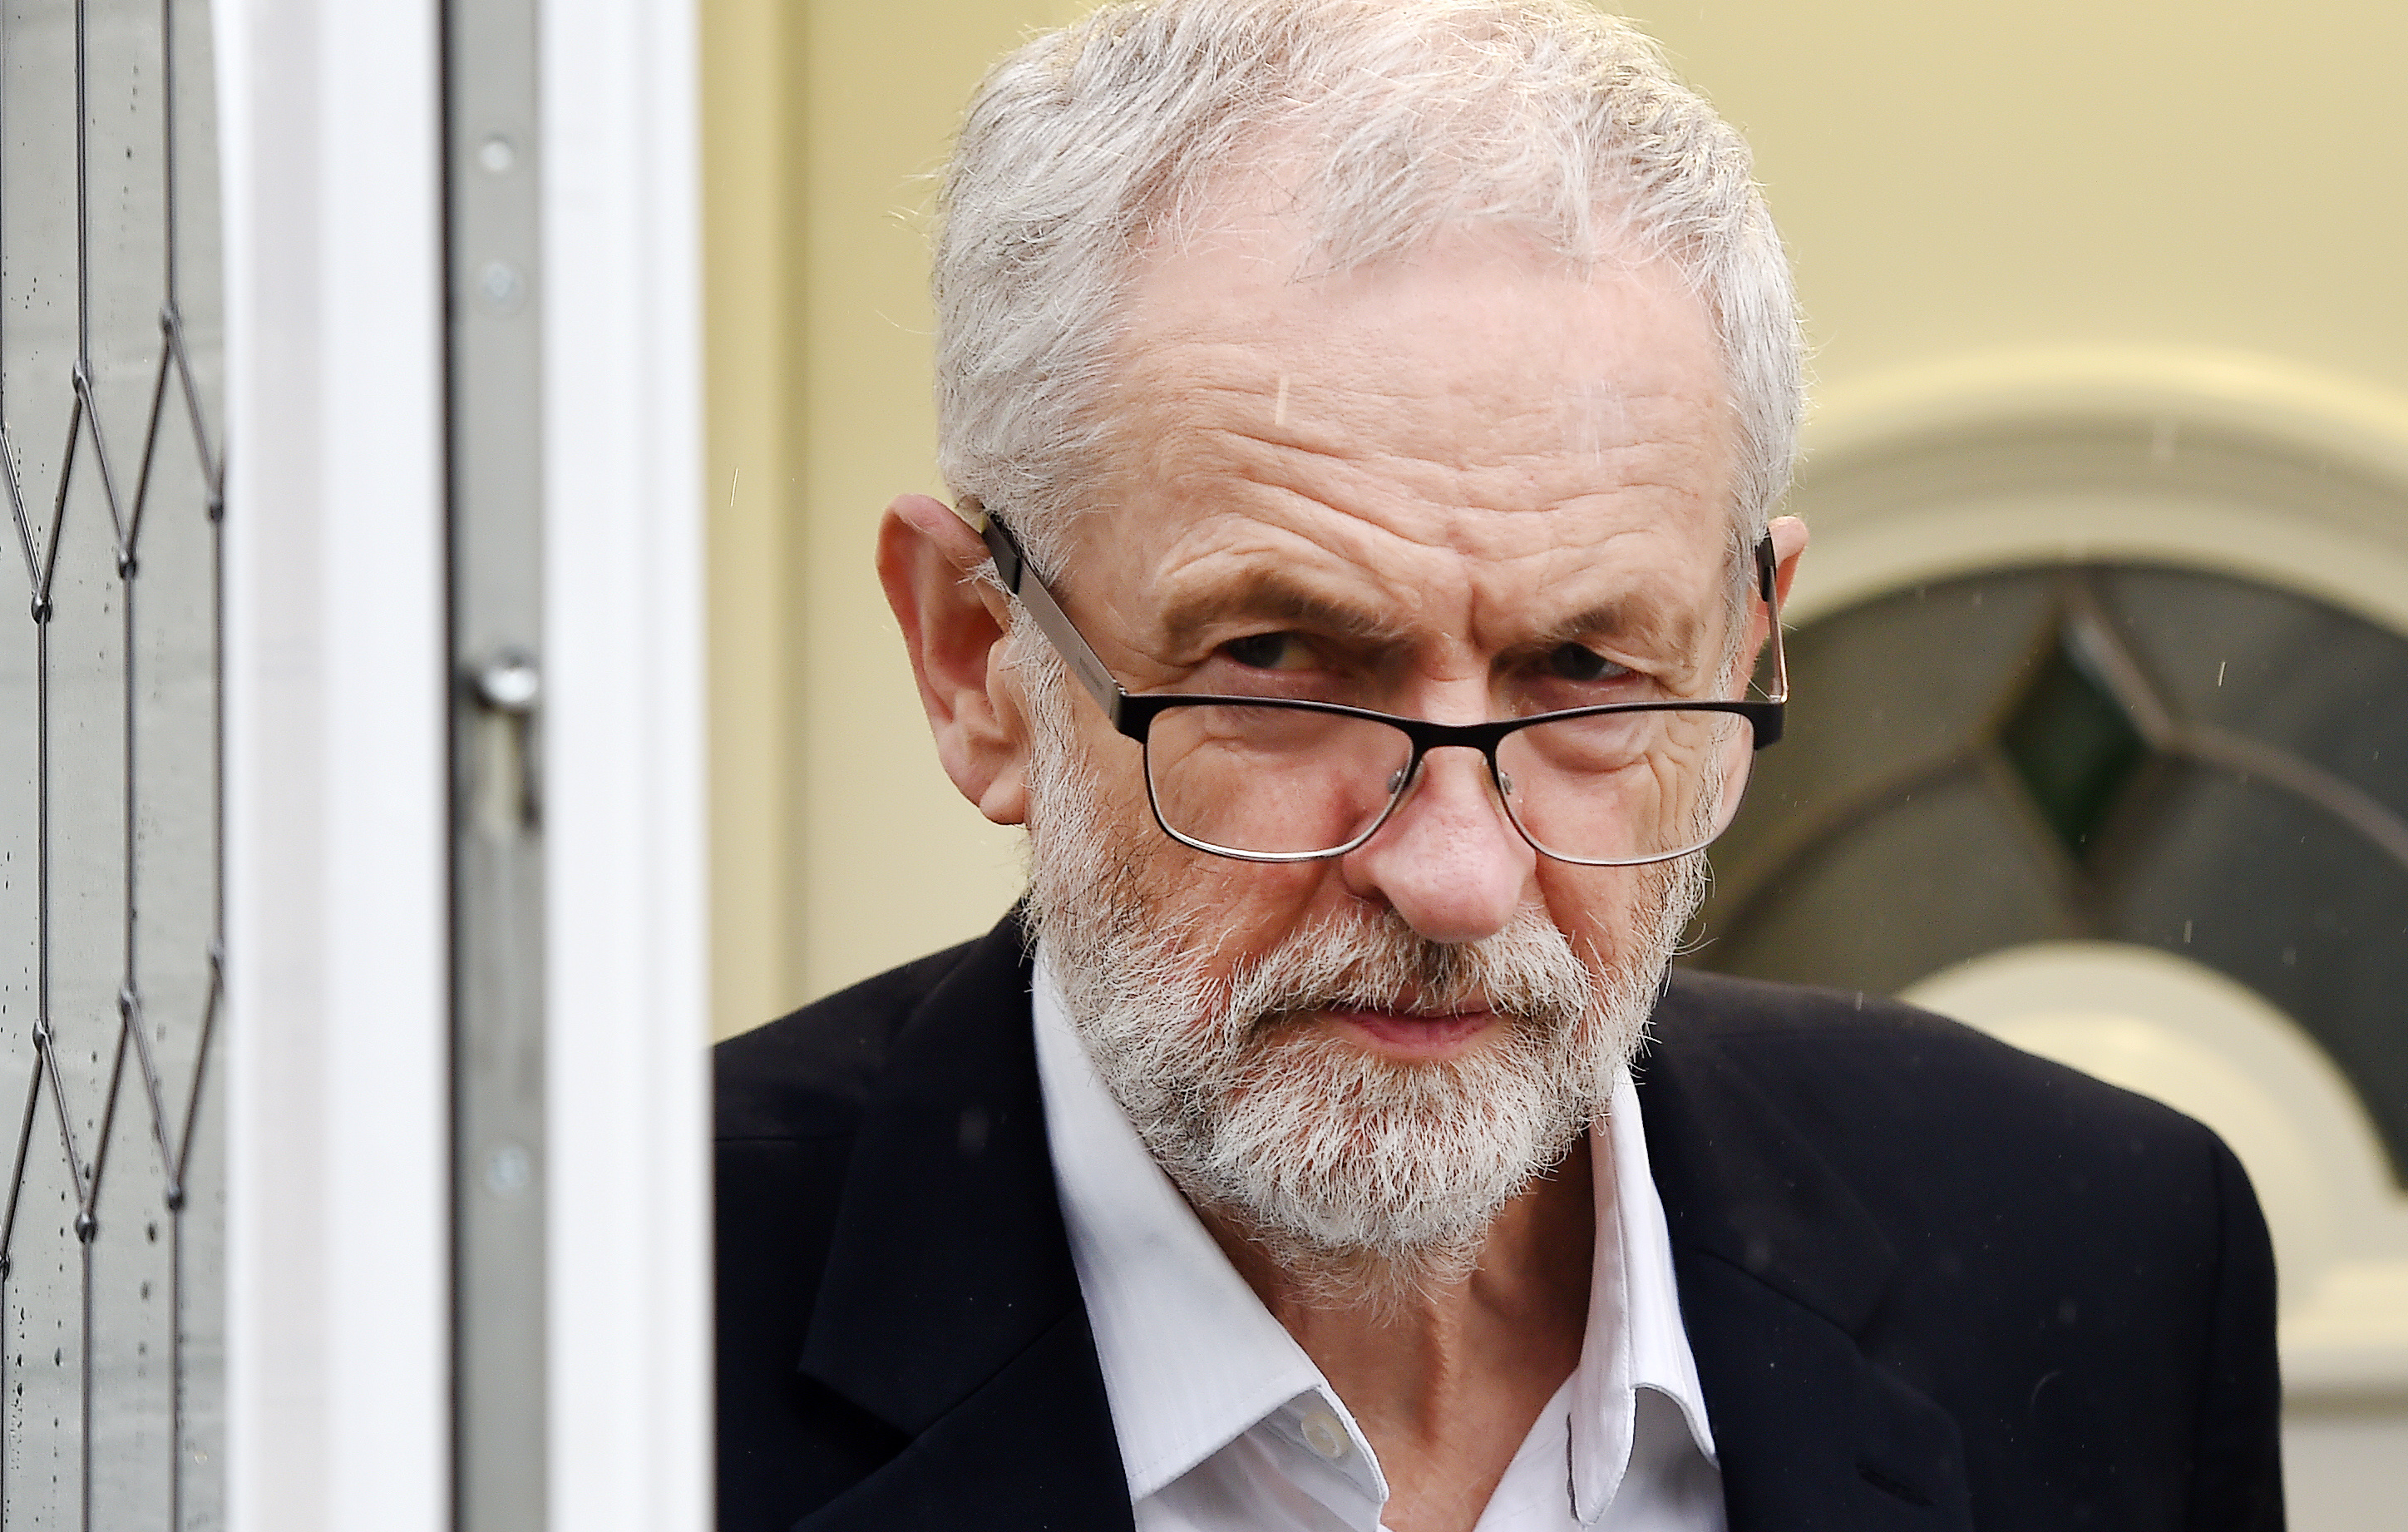 British Labour party opposition leader Jeremy Corbyn departs his home in London, Britain, 04 April 2019.